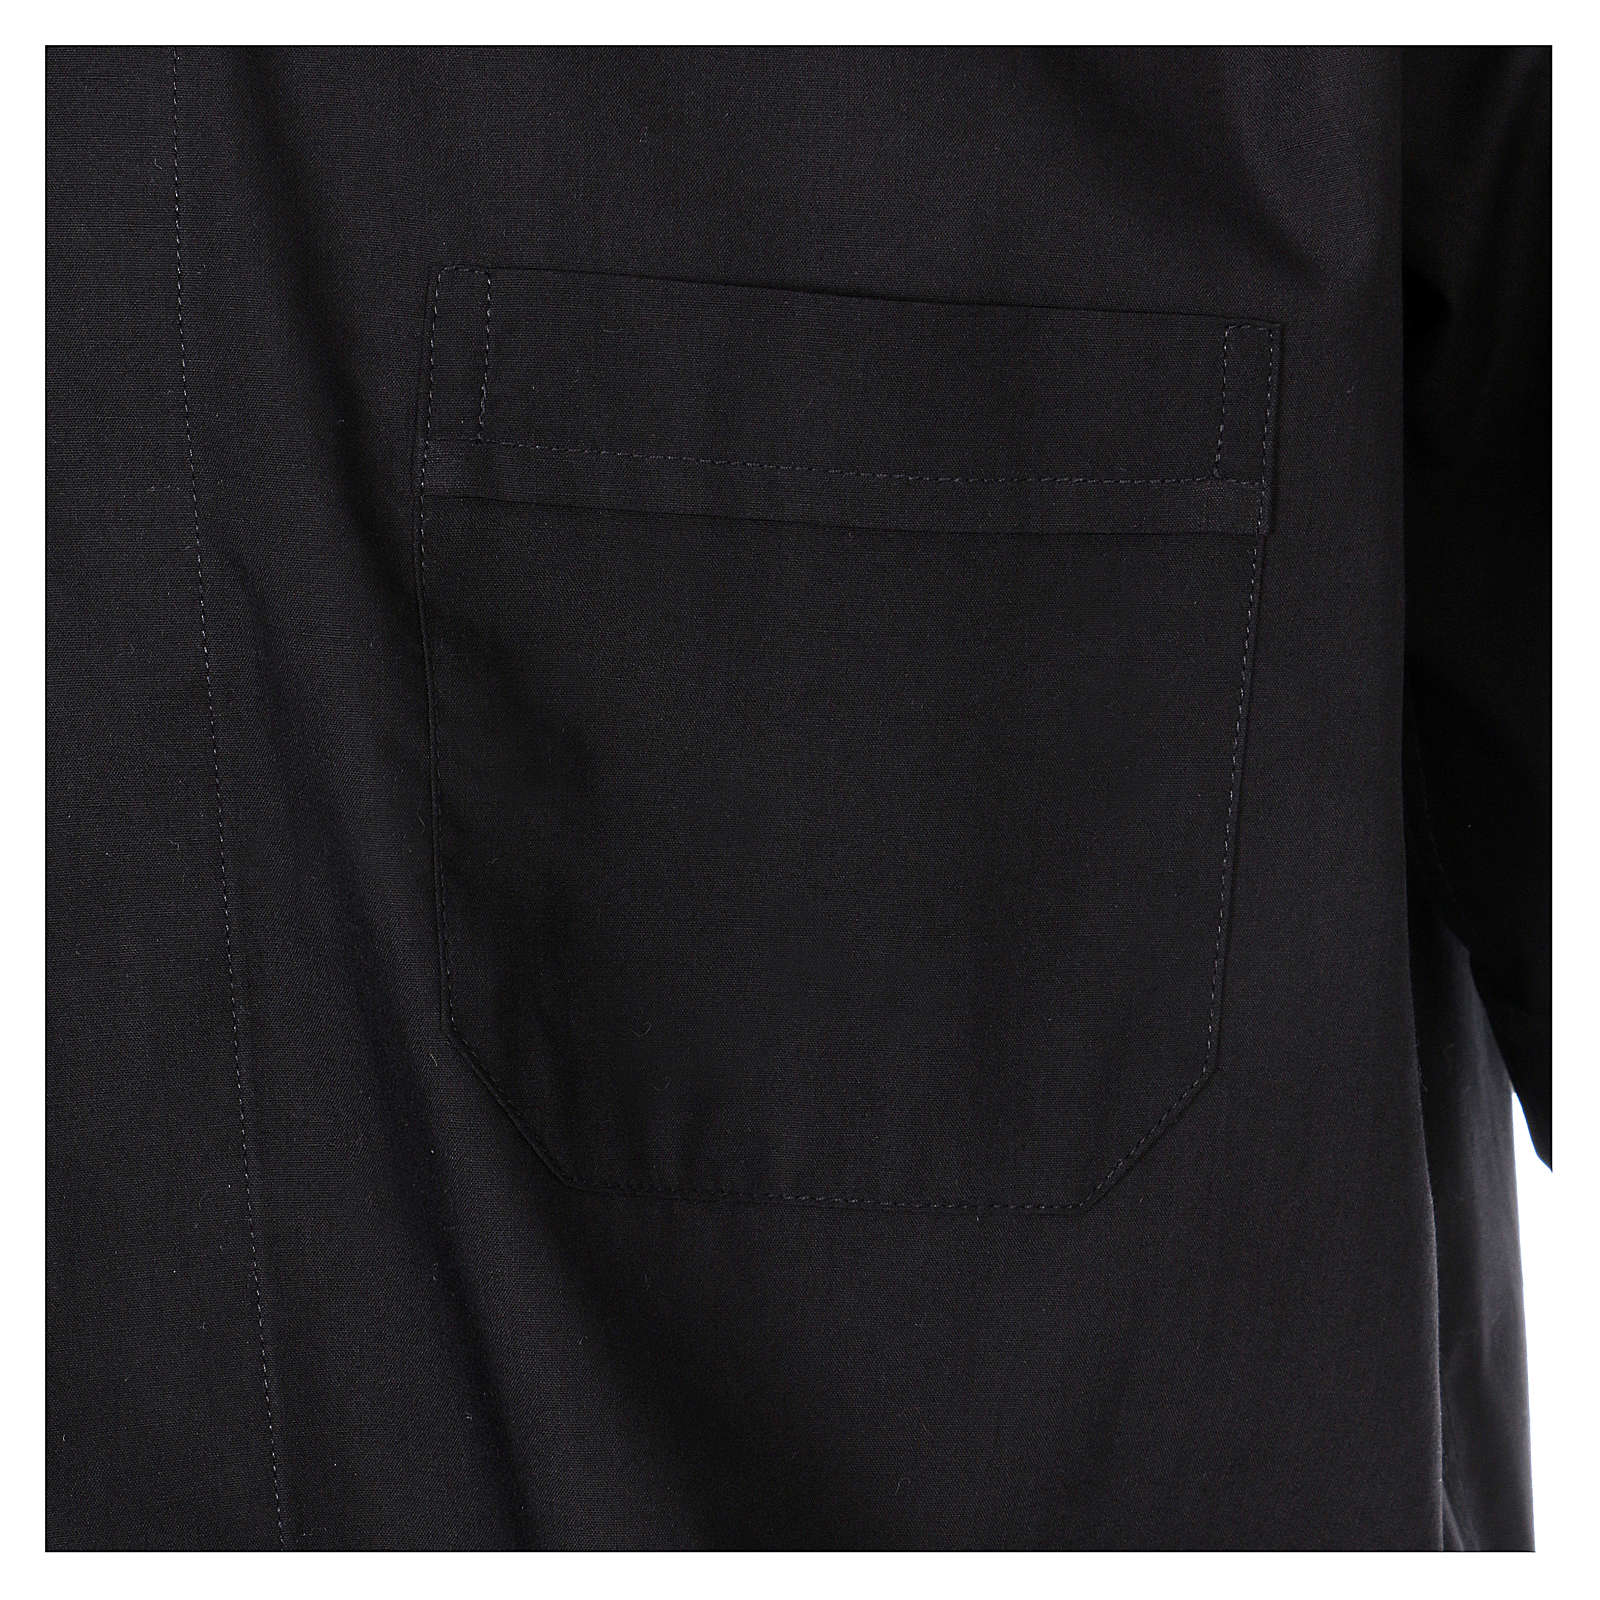 Camisa cuello Clergy manga corta mixto negra In Primis 4